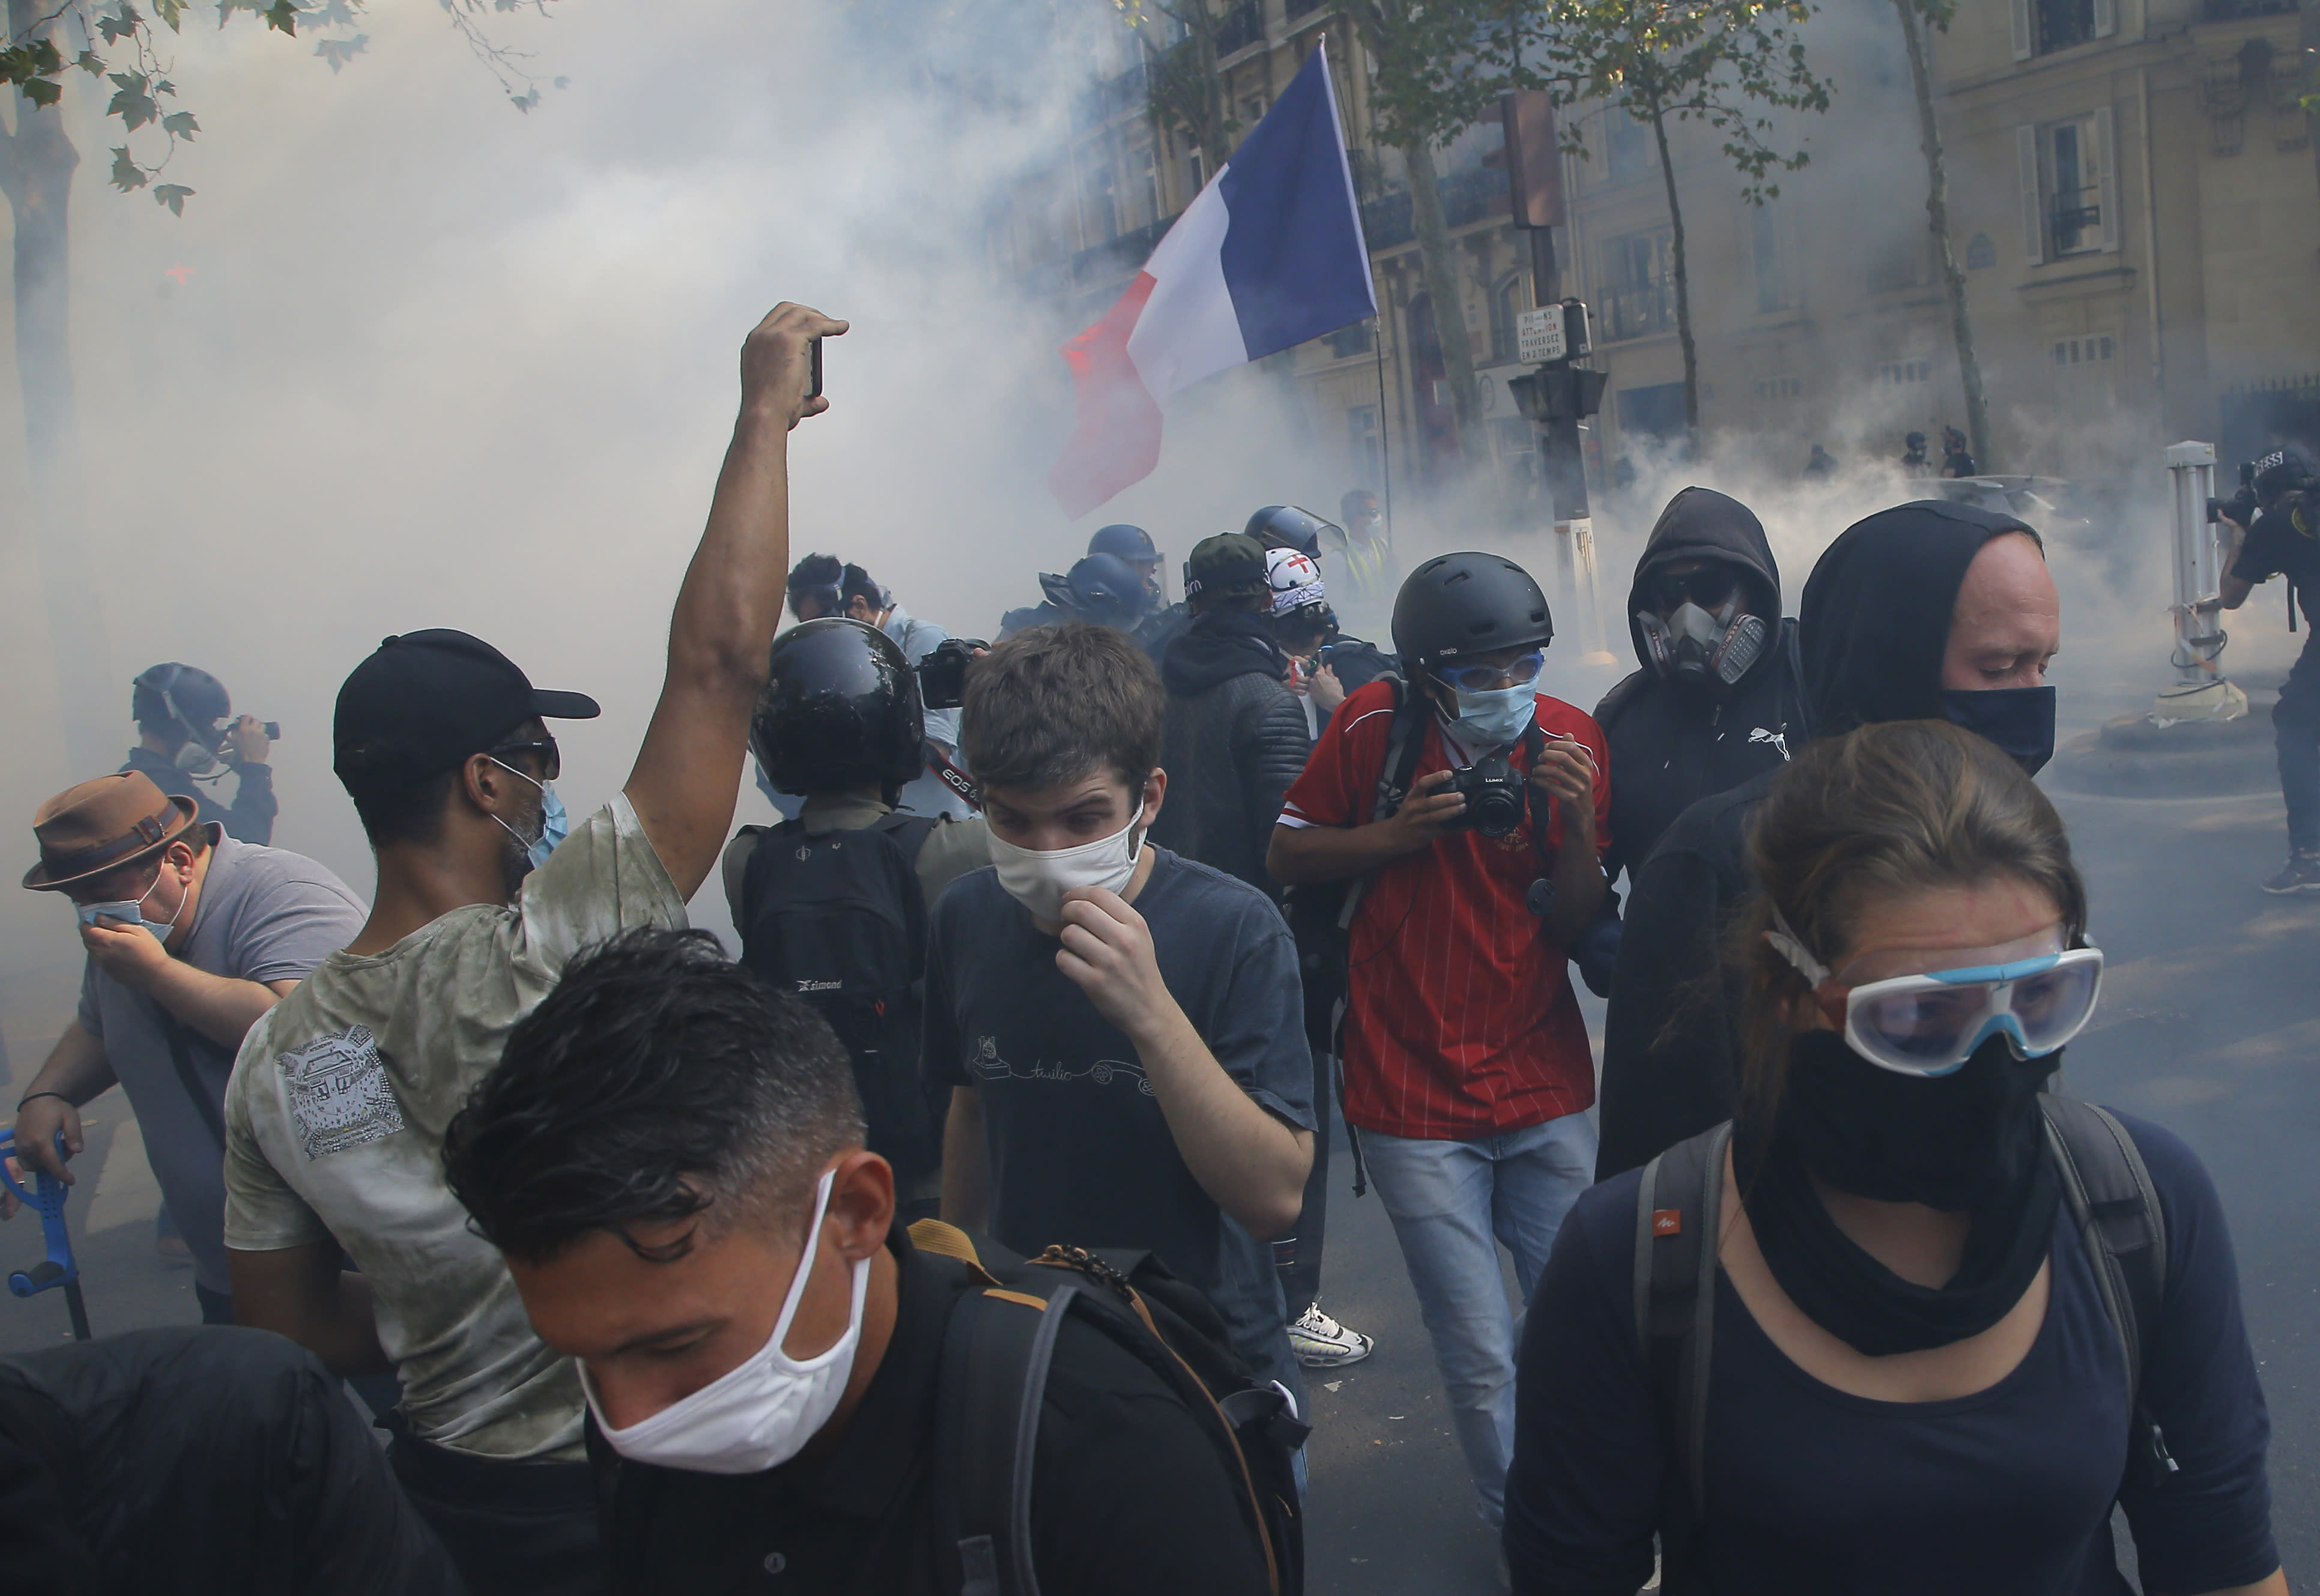 Yellow vest protesters escape tear gas fired by French police while wearing protective face masks as precaution against the conoravirus during a march in Paris, Saturday, Sept. 12, 2020. Activists relaunched France's yellow vest movement Saturday after the disruptive demonstrations against Emmanuel Macron's presidency and perceived elitism tapered off during the coronavirus pandemic.(AP Photo/Michel Euler)